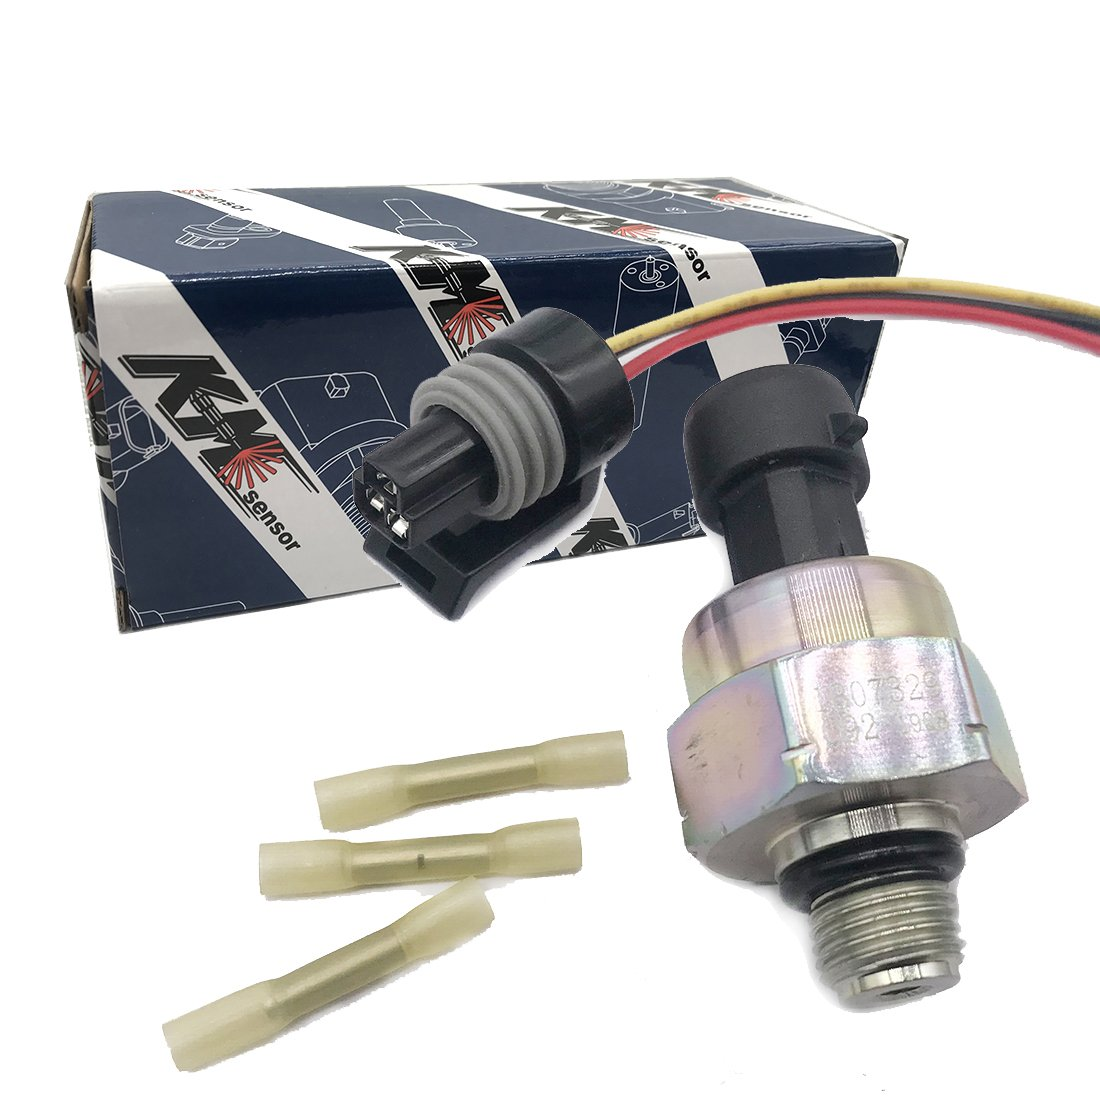 1807329C92 Fuel Injection Injector Control Pressure ICP Sensor for 7.3L Powerstroke Diesel 1994-2003